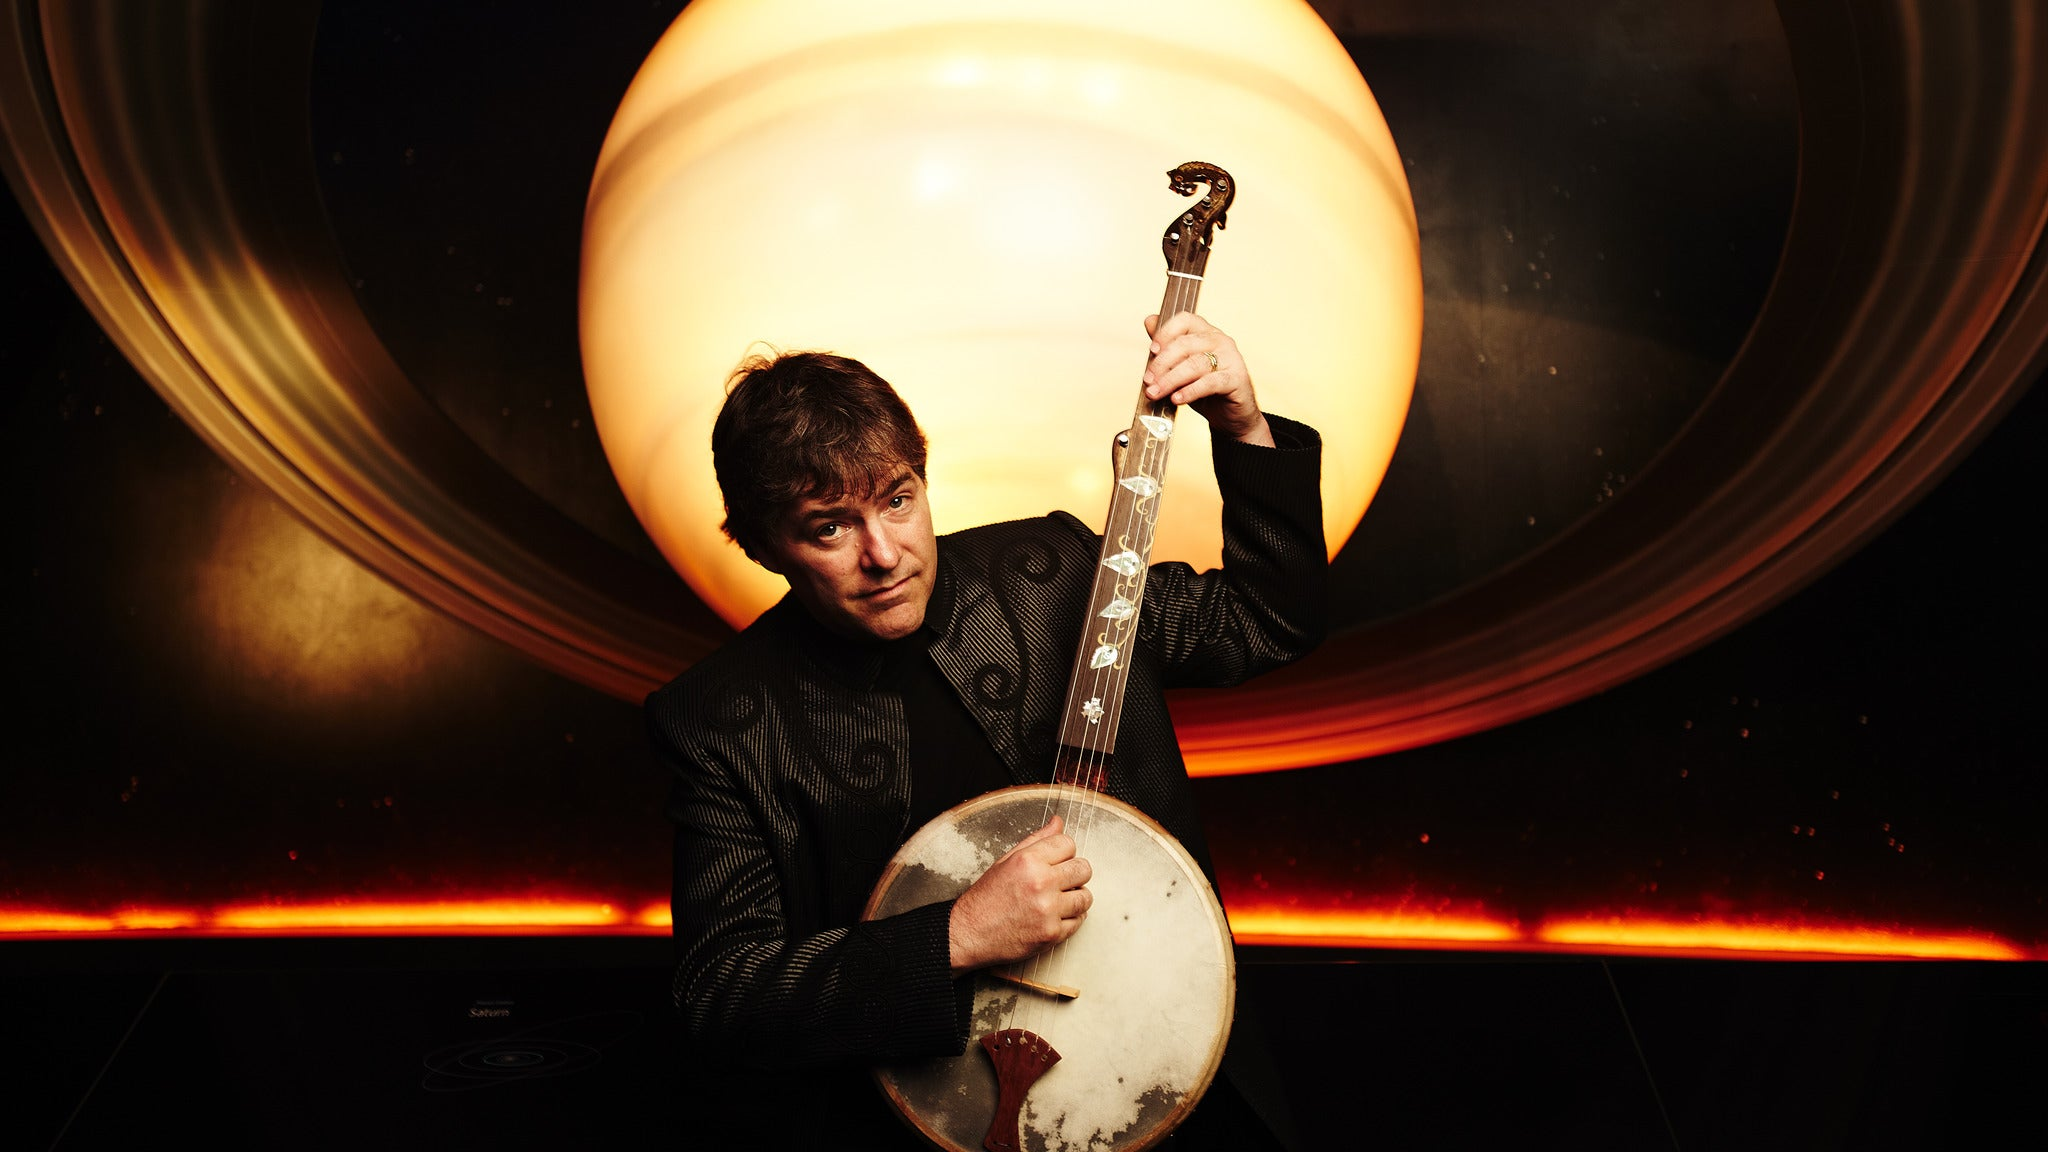 Bela Fleck at Freight & Salvage